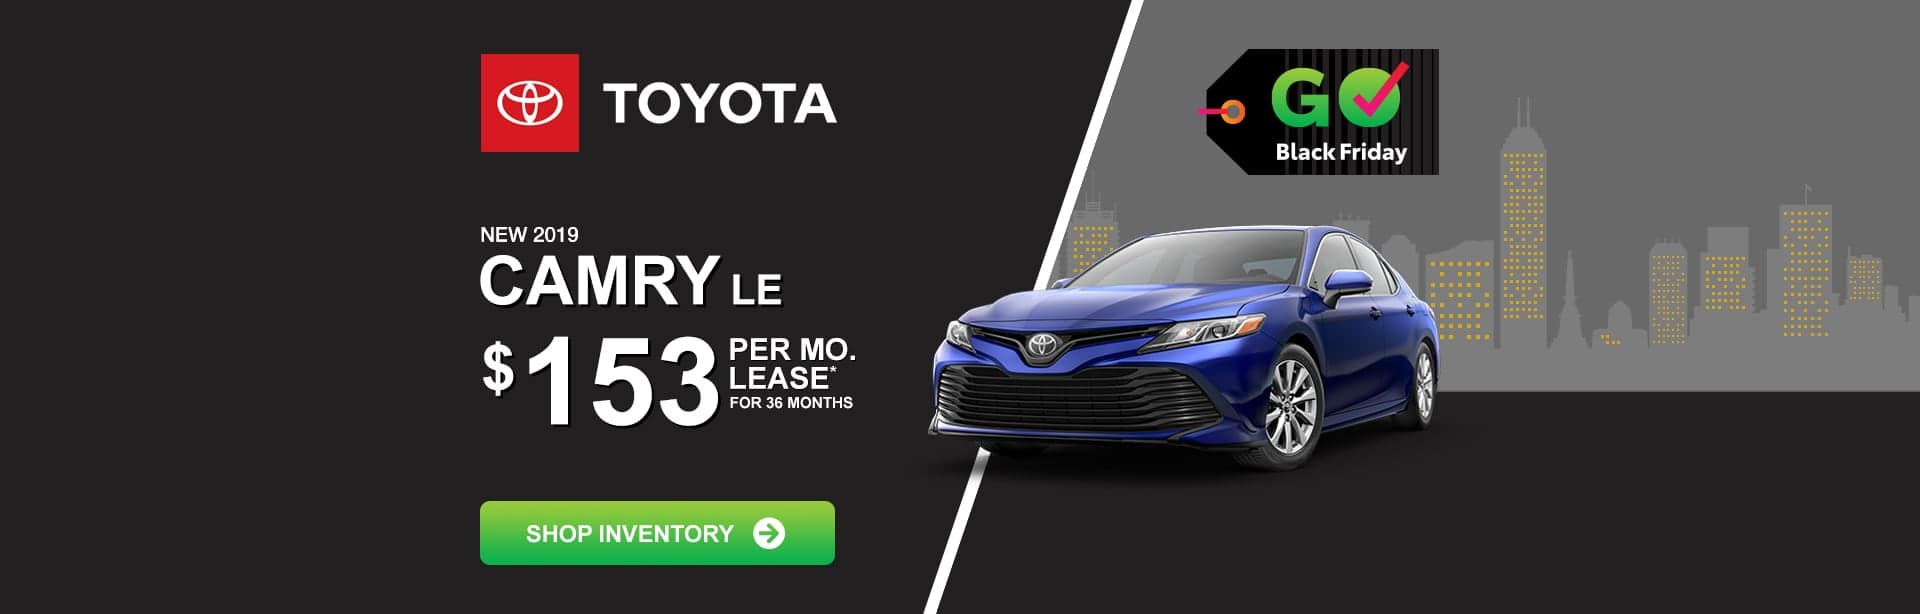 Toyota Camry Black Friday Lease Special near Indianapolis, Indiana